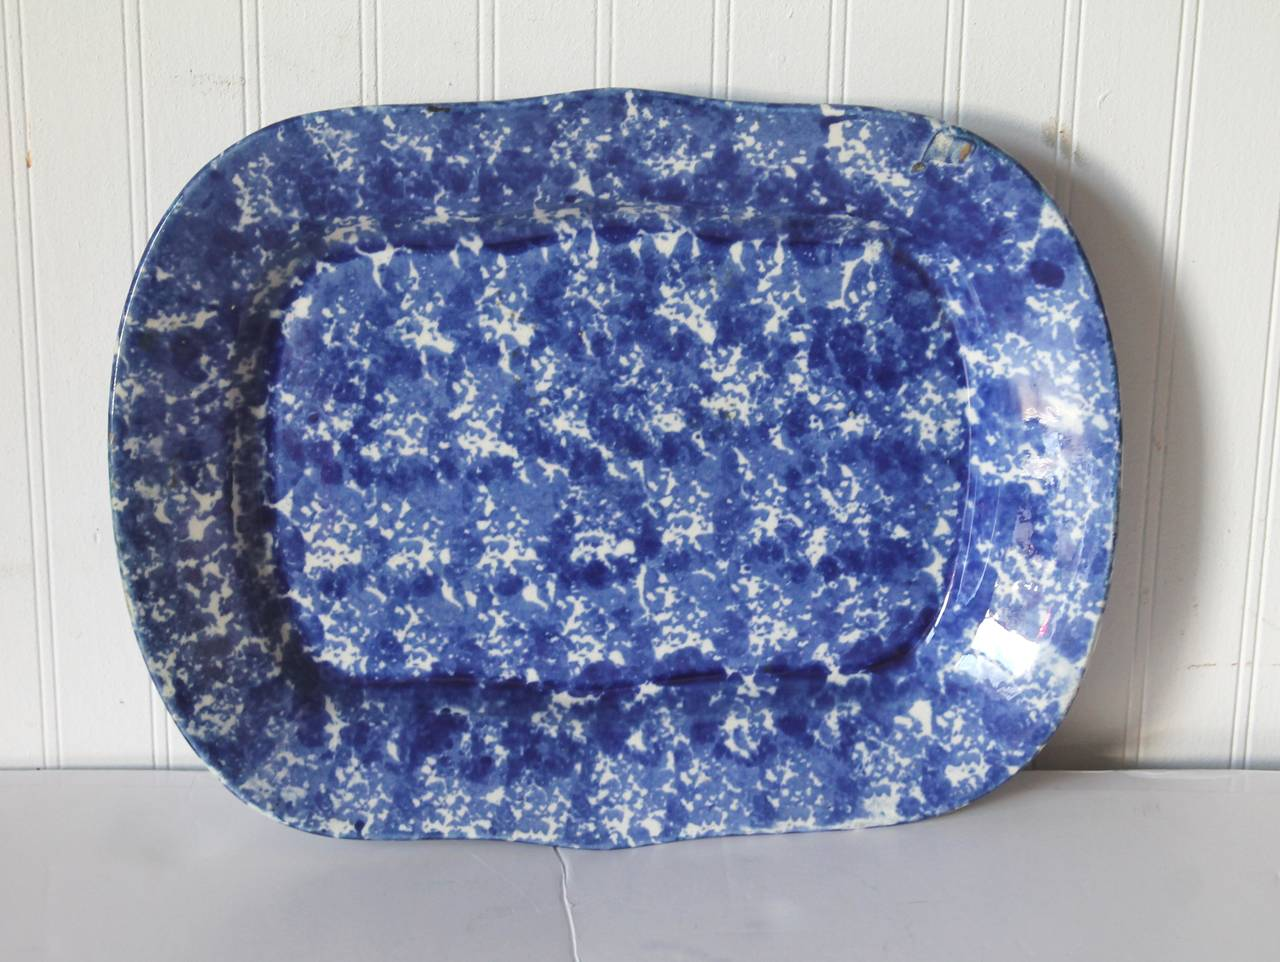 This large amazing 19th century sponge ware platter is in pristine condition and has a interesting slight warping as was in the making. The condition is very good. The shape is very charming.